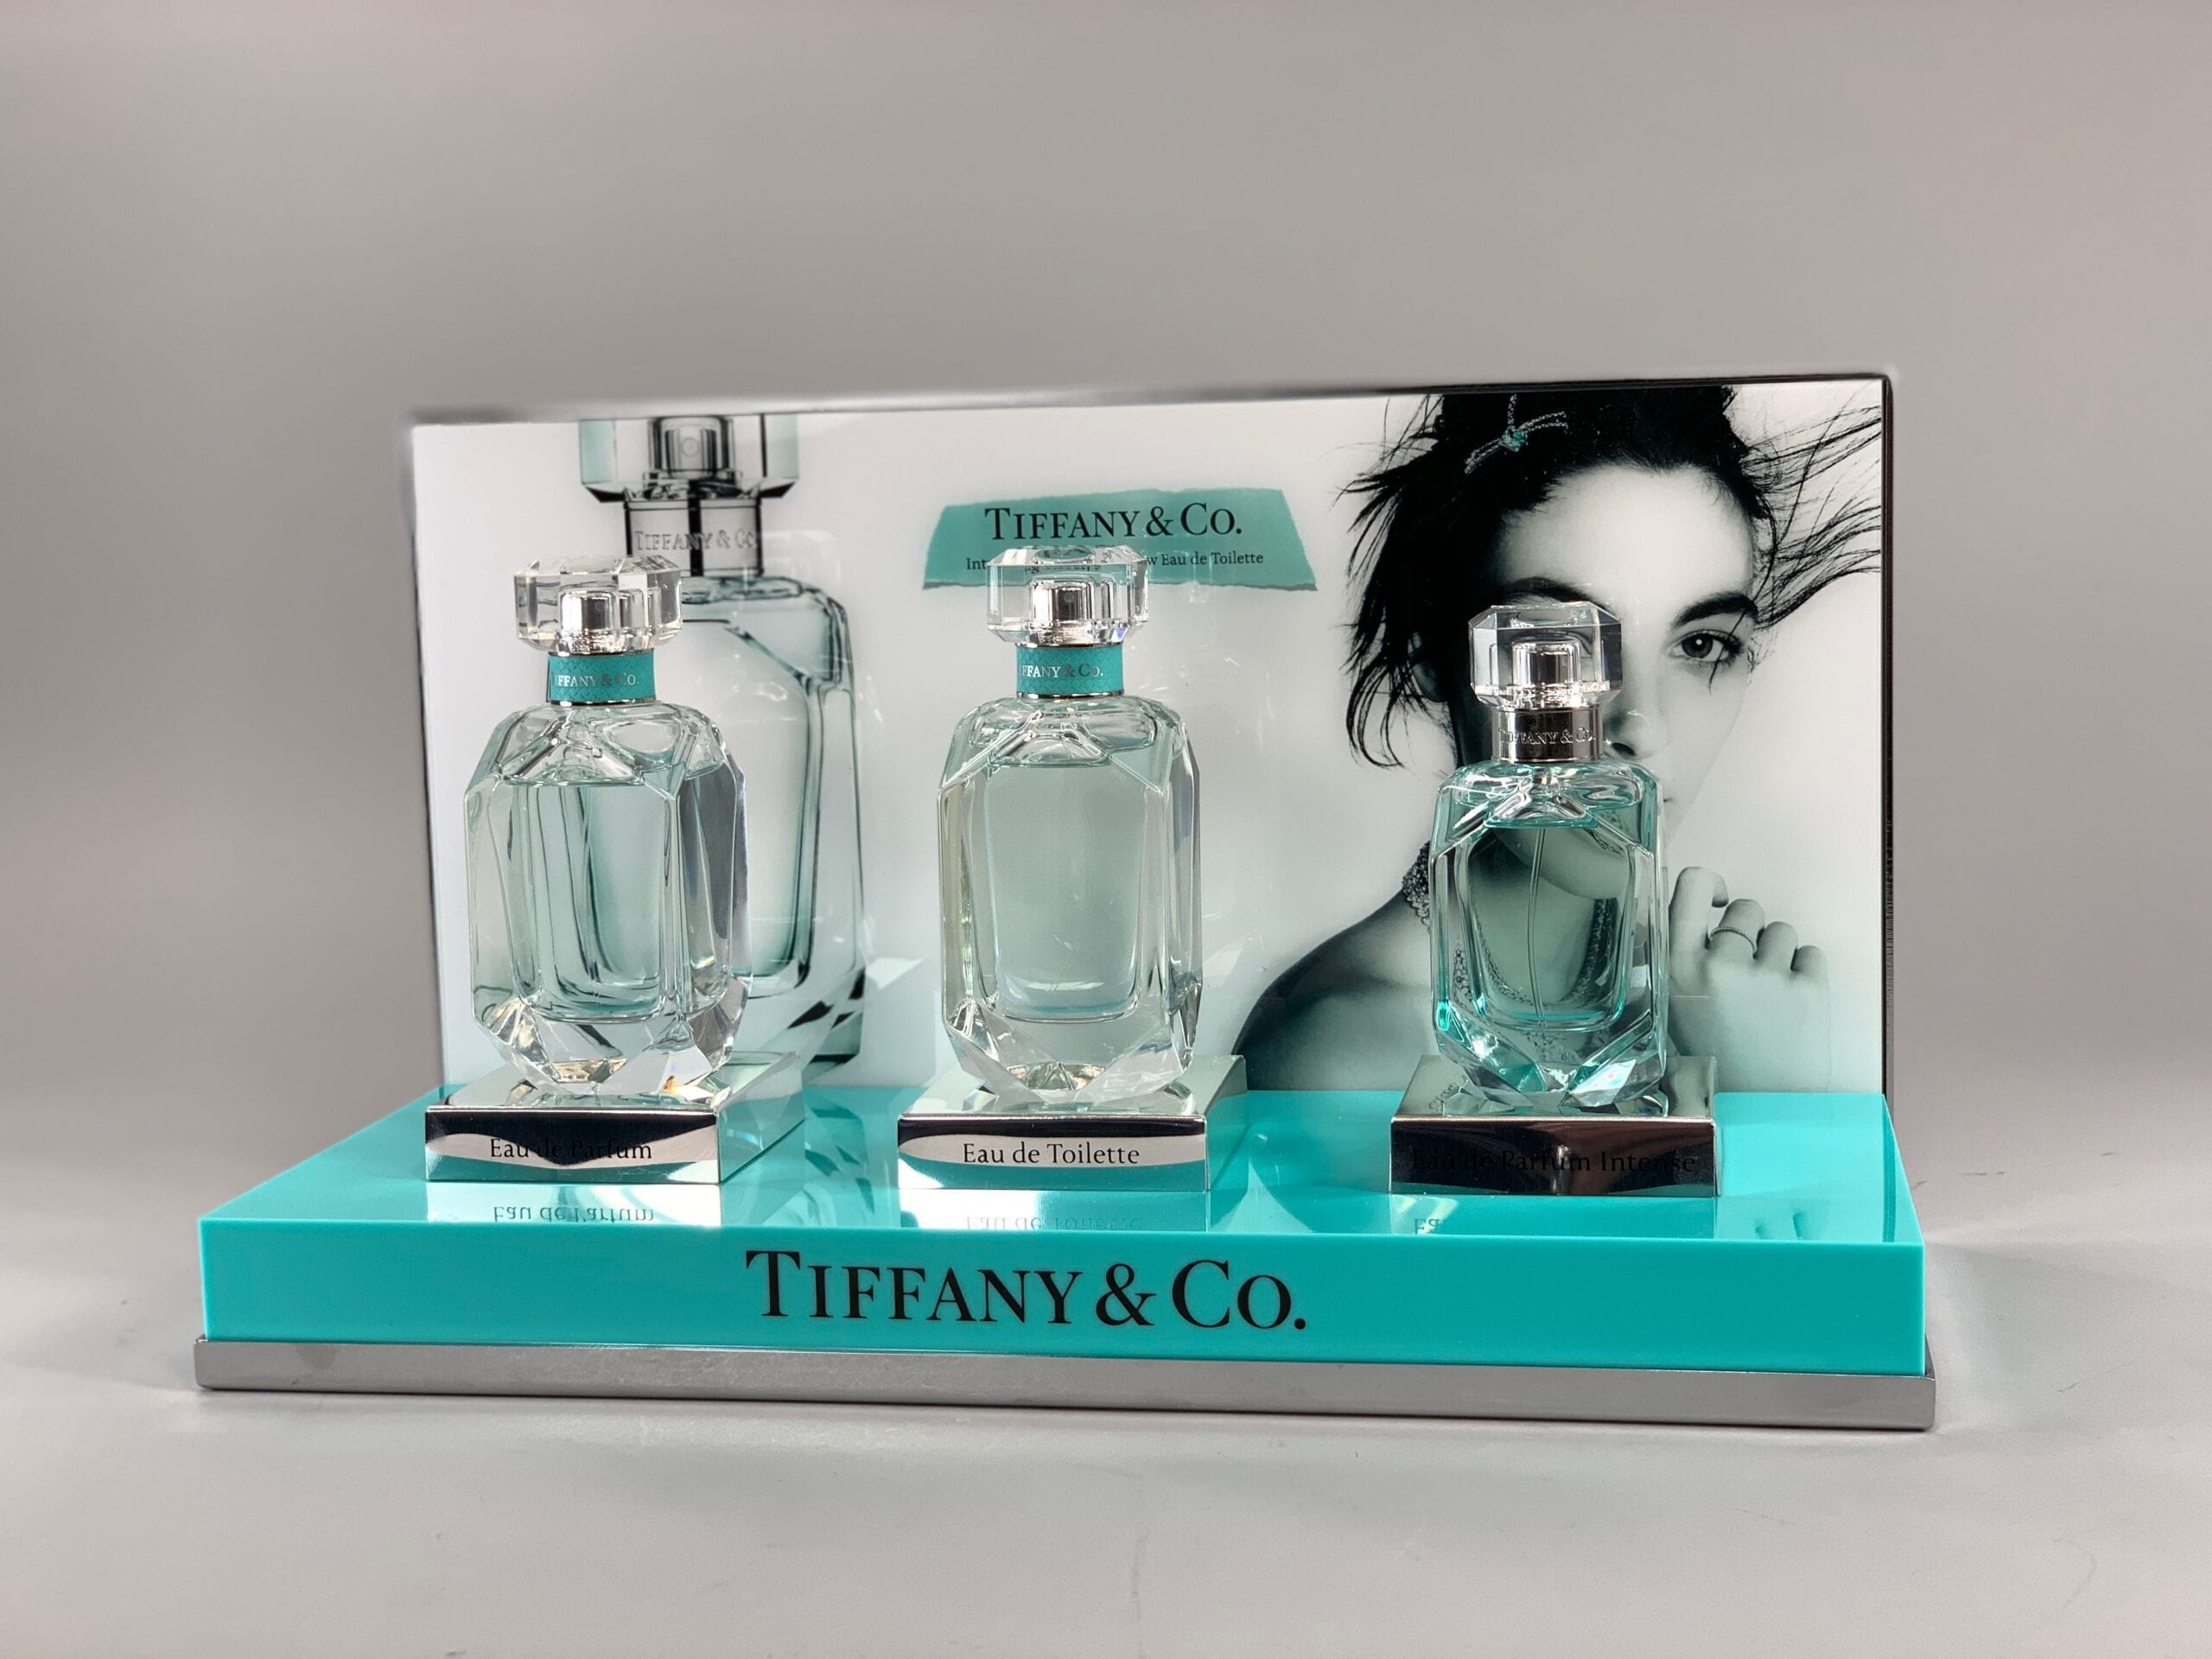 A custom in case enhancement, similar to this acrylic perfume display we created for a client, can help your product stand out from the rest in any retail setting.